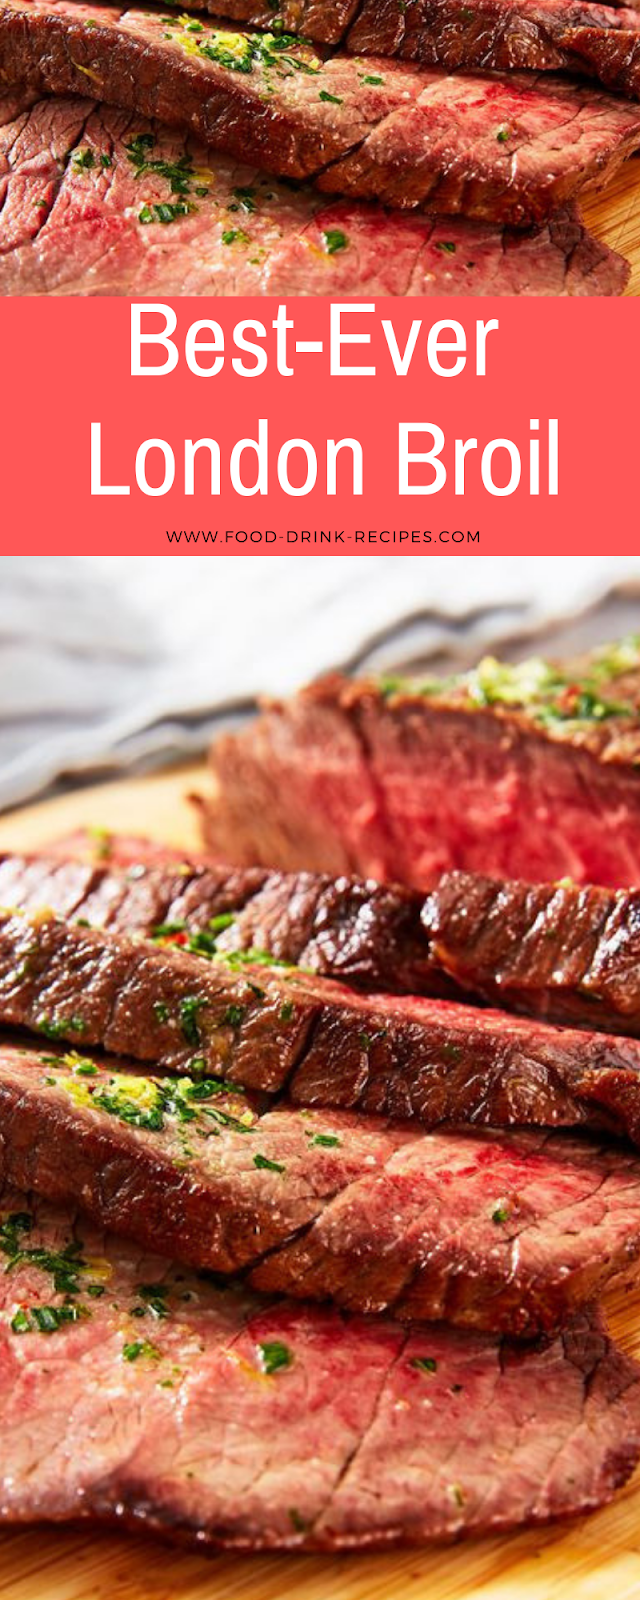 Best-Ever London Broil